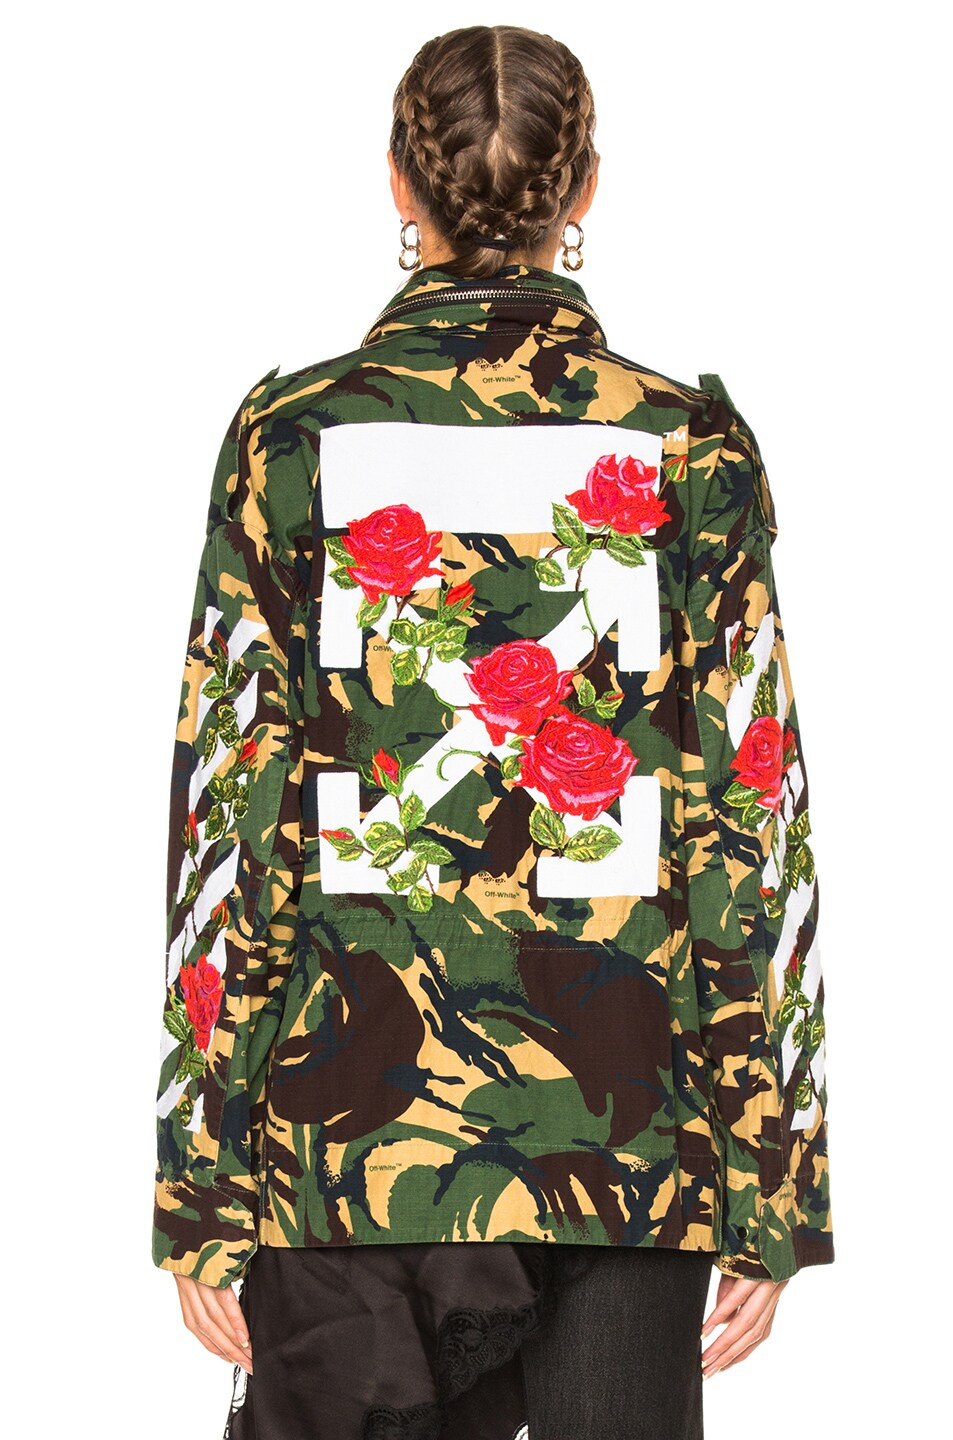 854ff8bd52fab Image 7 of OFF-WHITE Diagonal Roses M65 Jacket in Green Camouflage